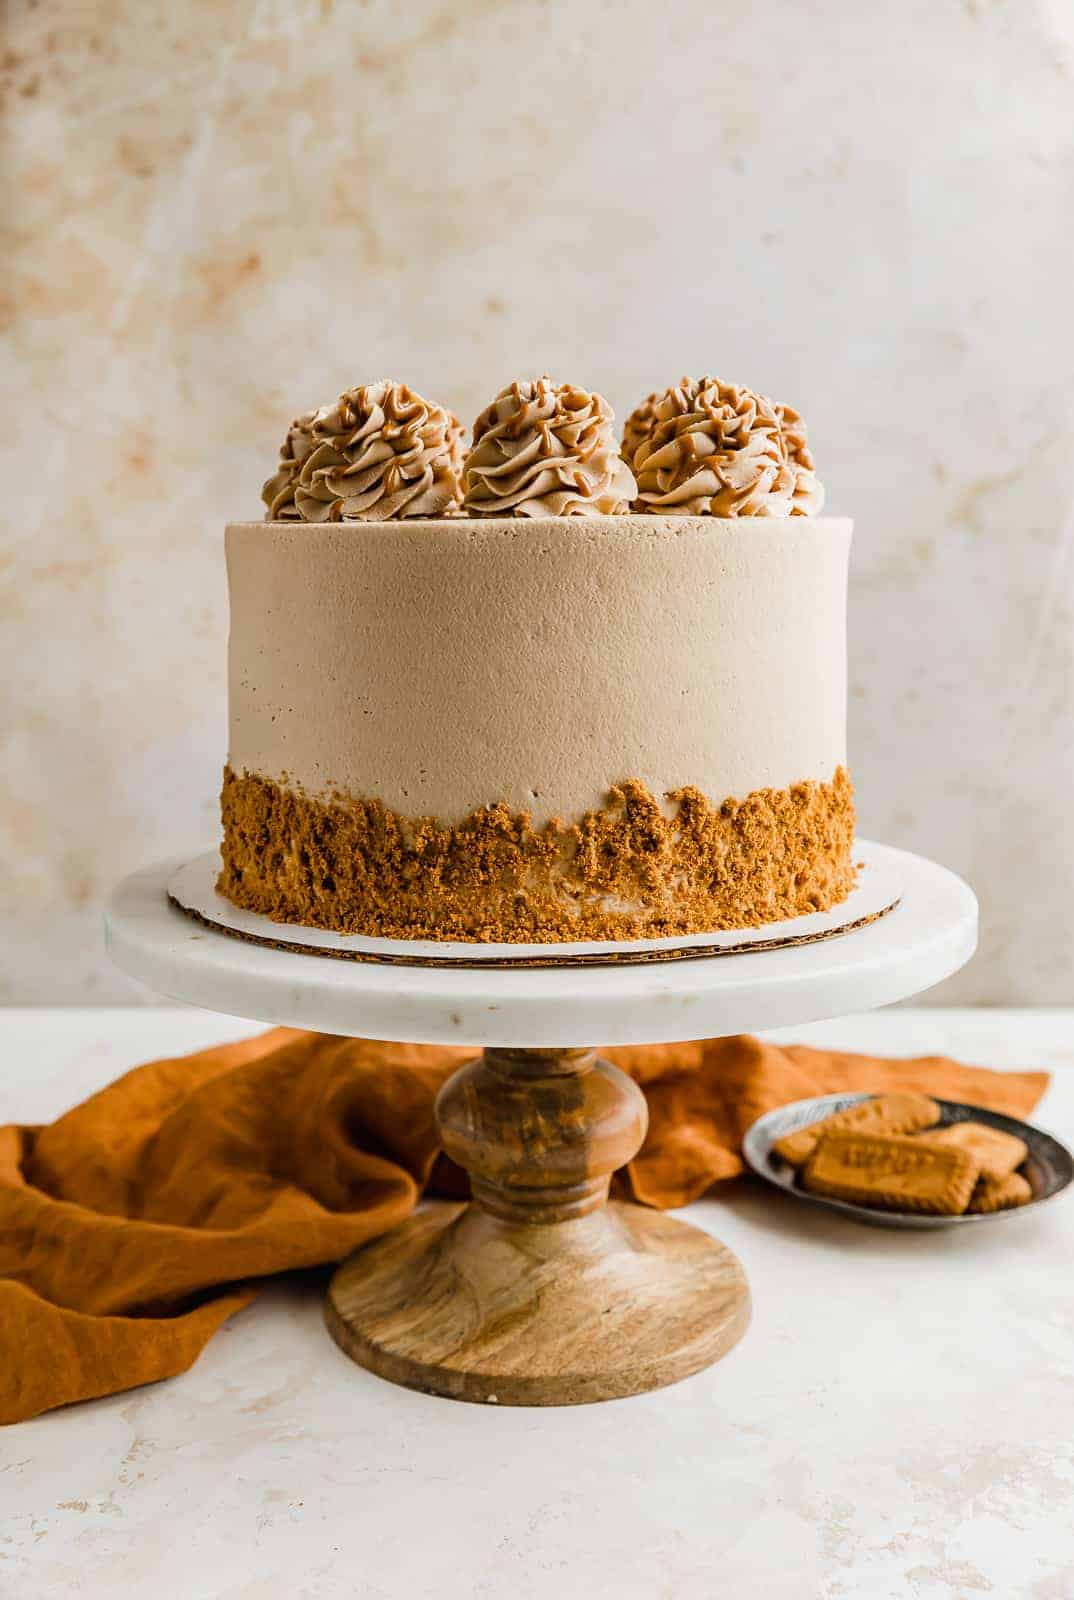 A Biscoff Cake on a cake stand with cookie crumbs on the sides.